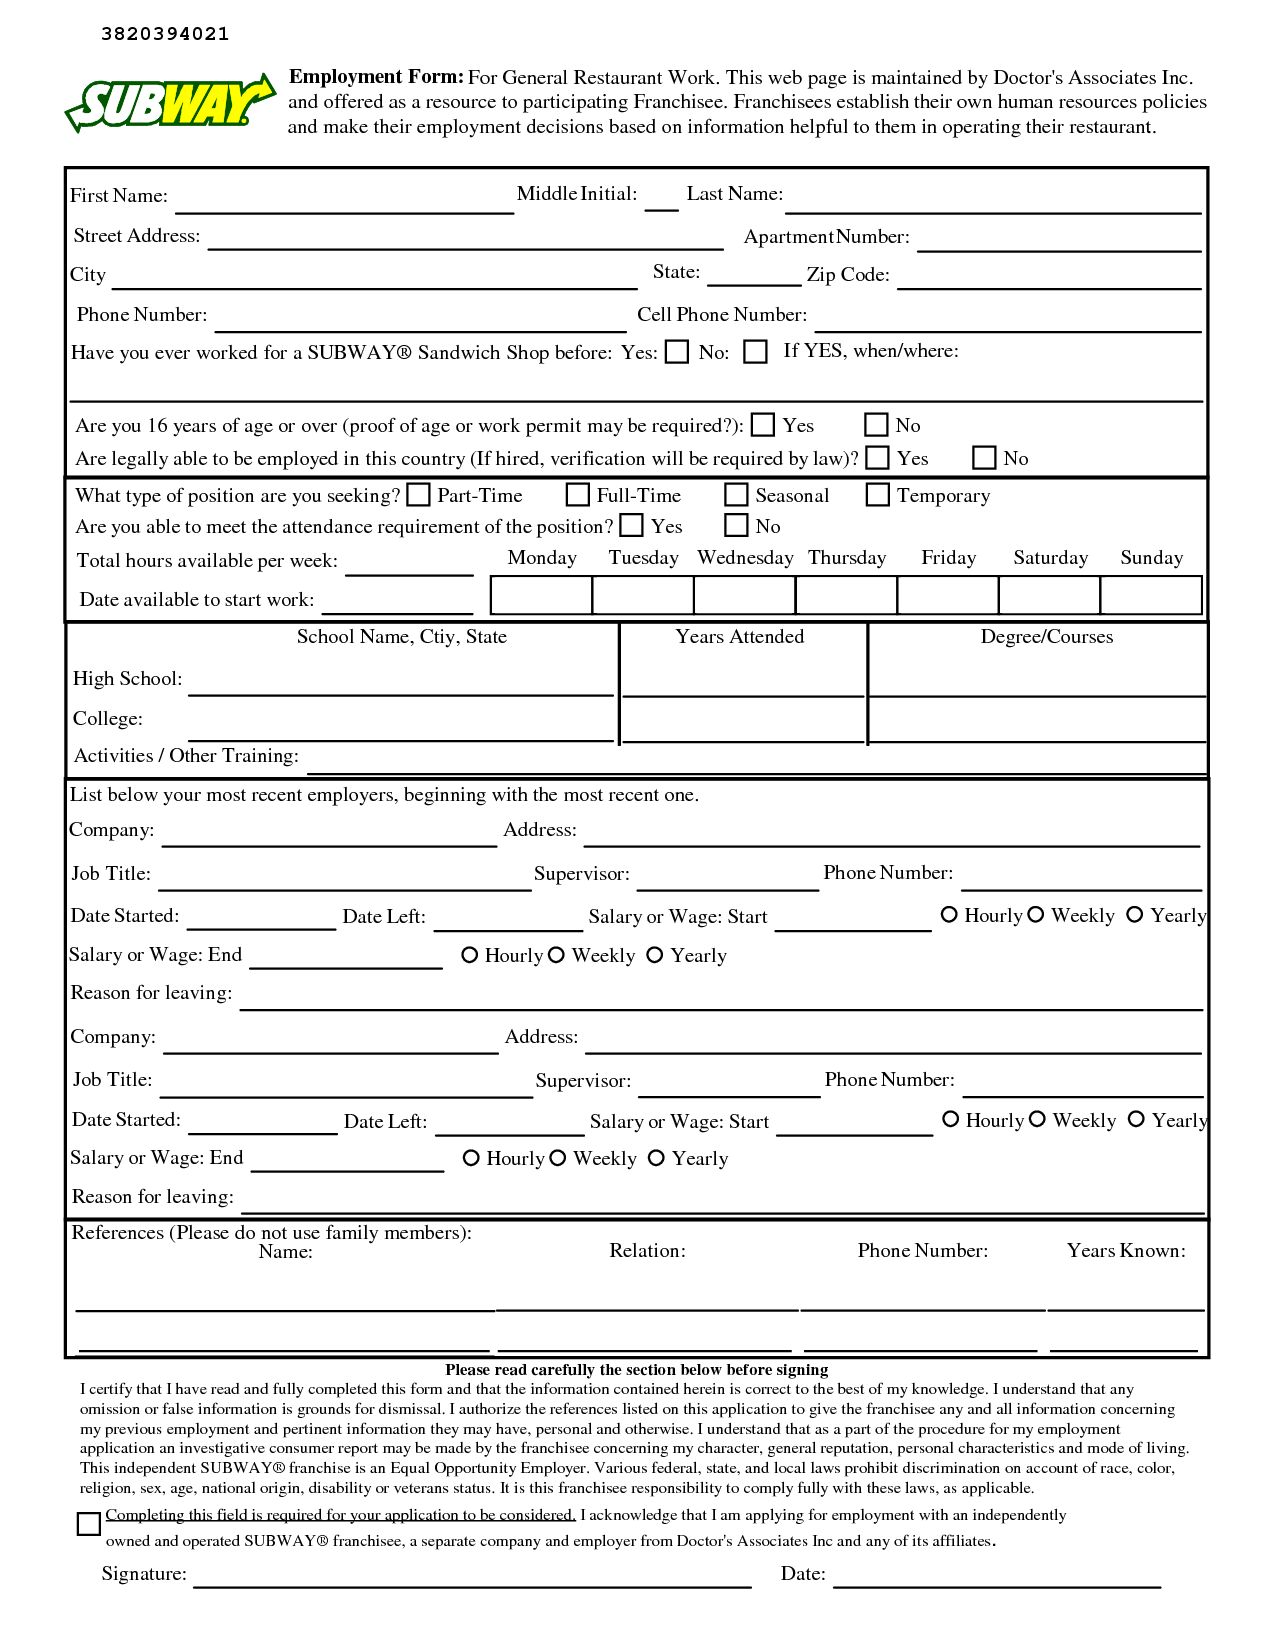 Printable Subway Job Application Form